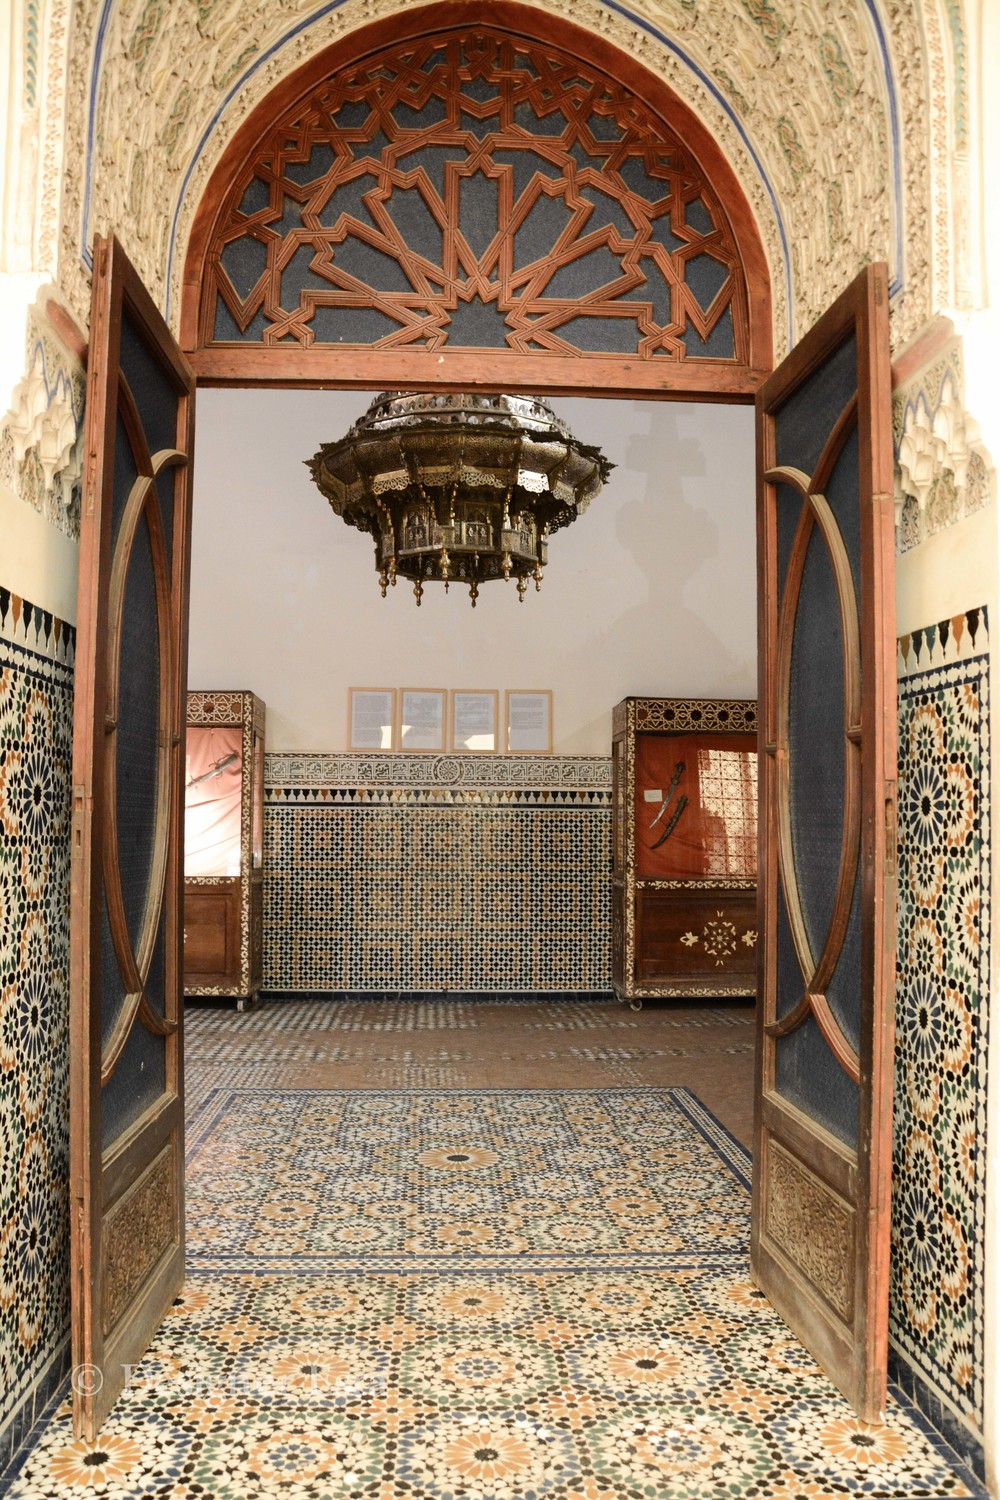 Moroccan Islamic Patterns